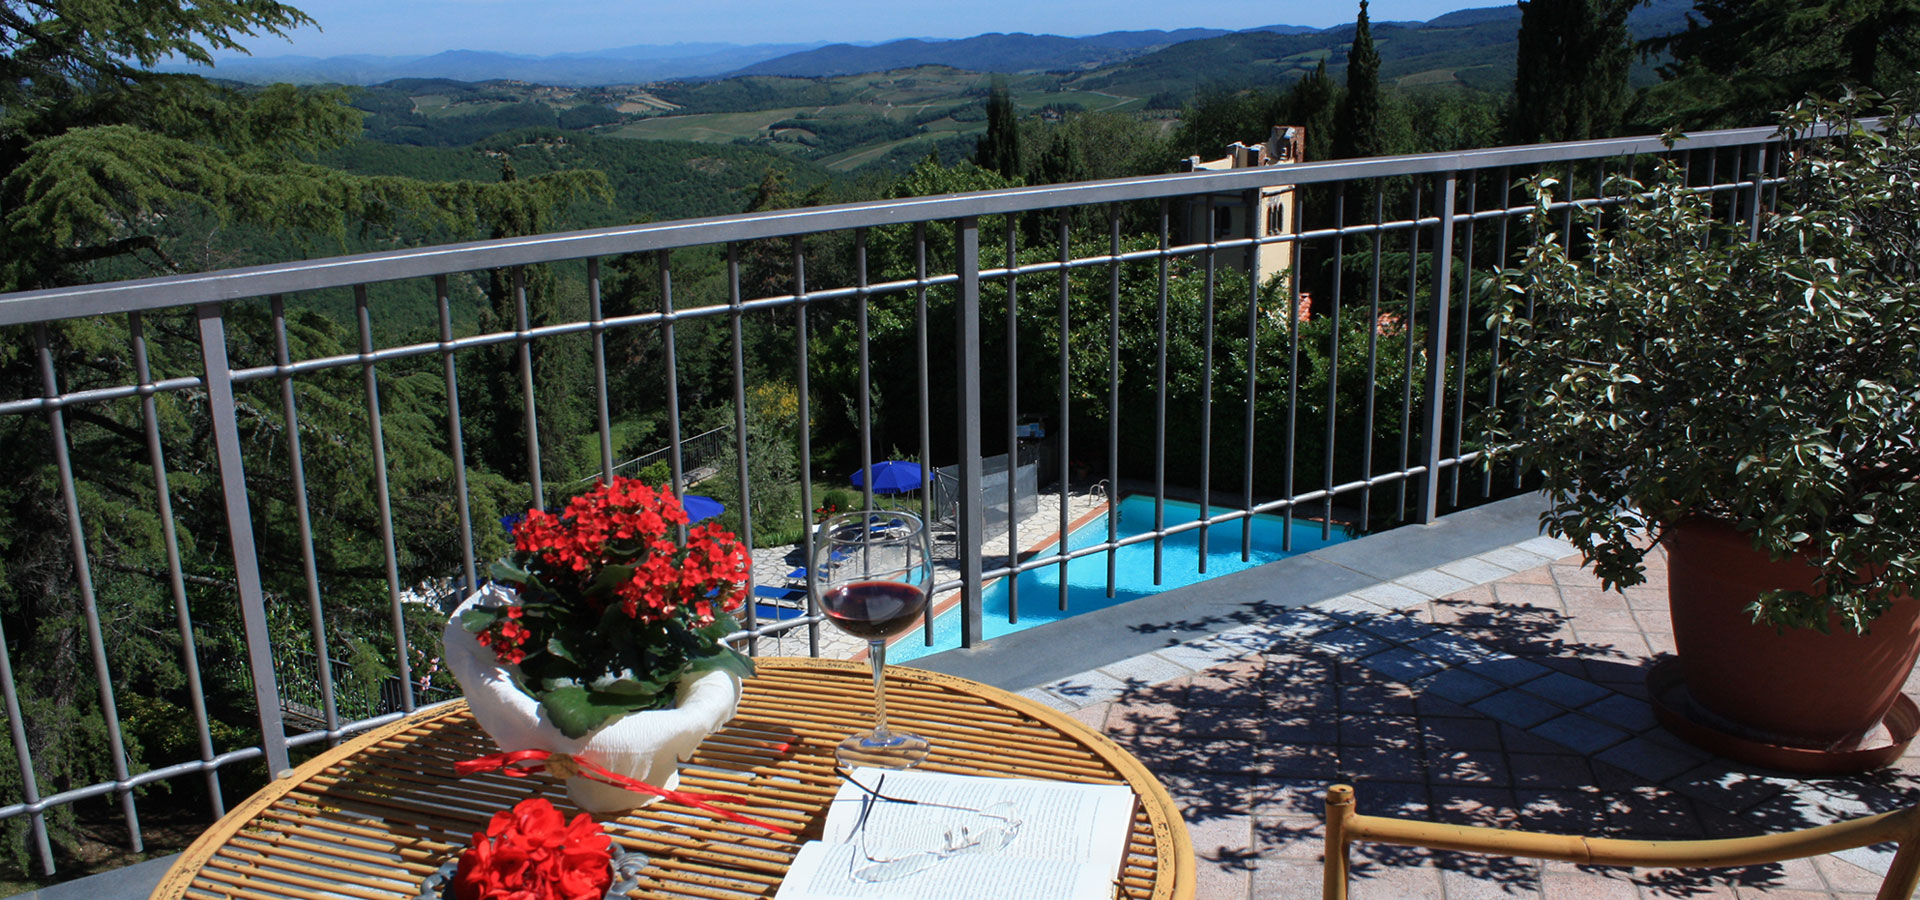 Bed and Breakfast Chianti con piscina camere appartamento Toscana